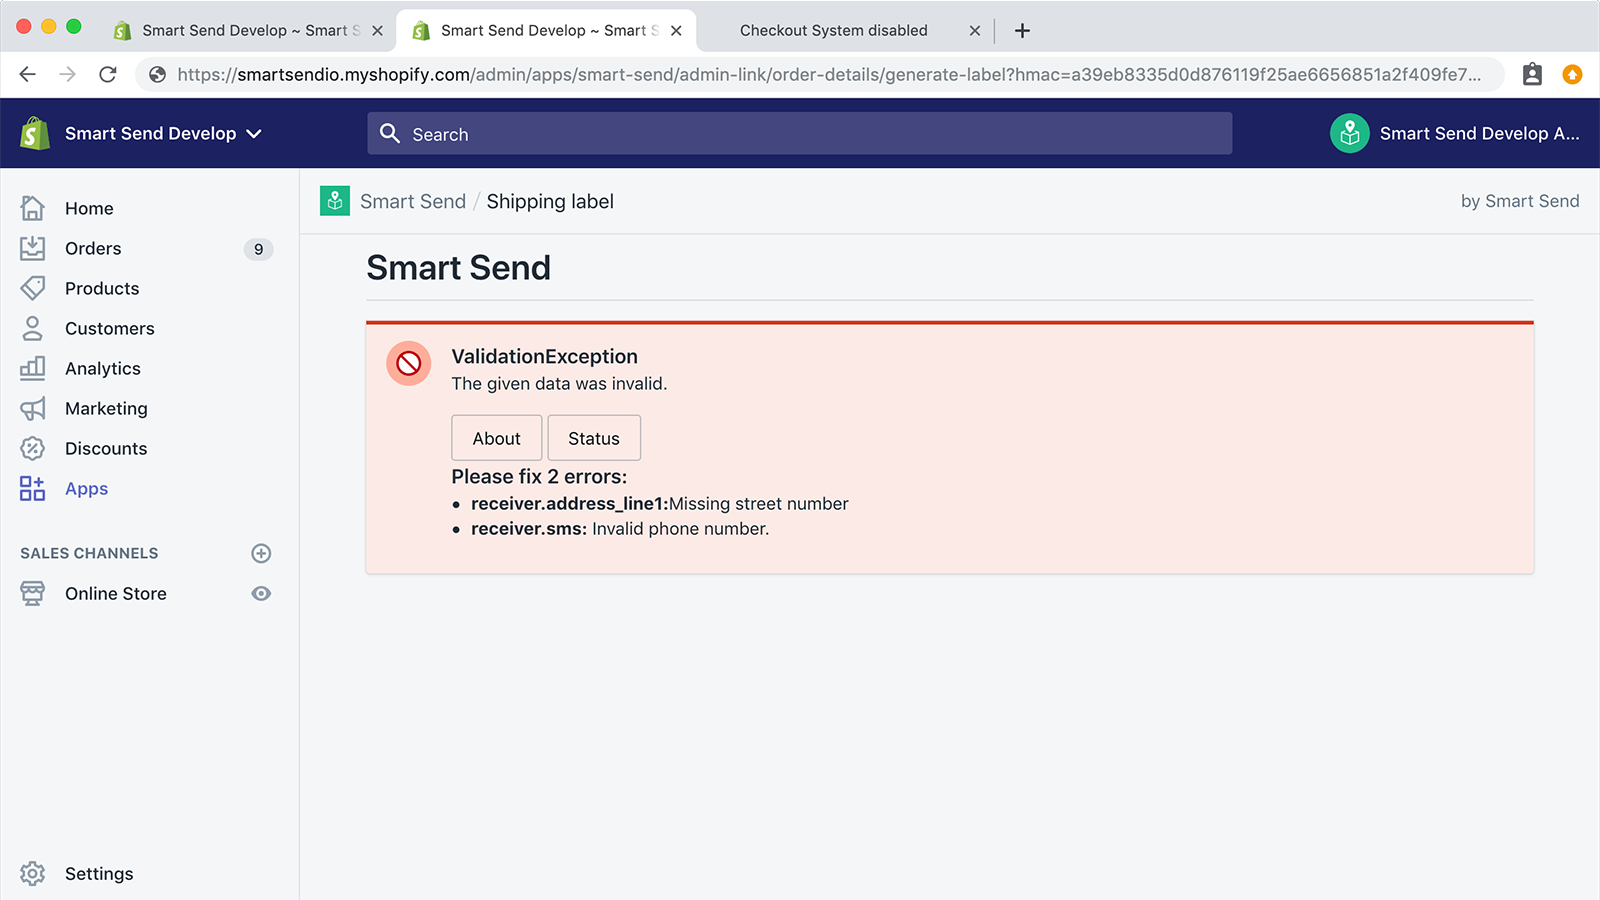 Detailed error messages explains exactly what and how to fix